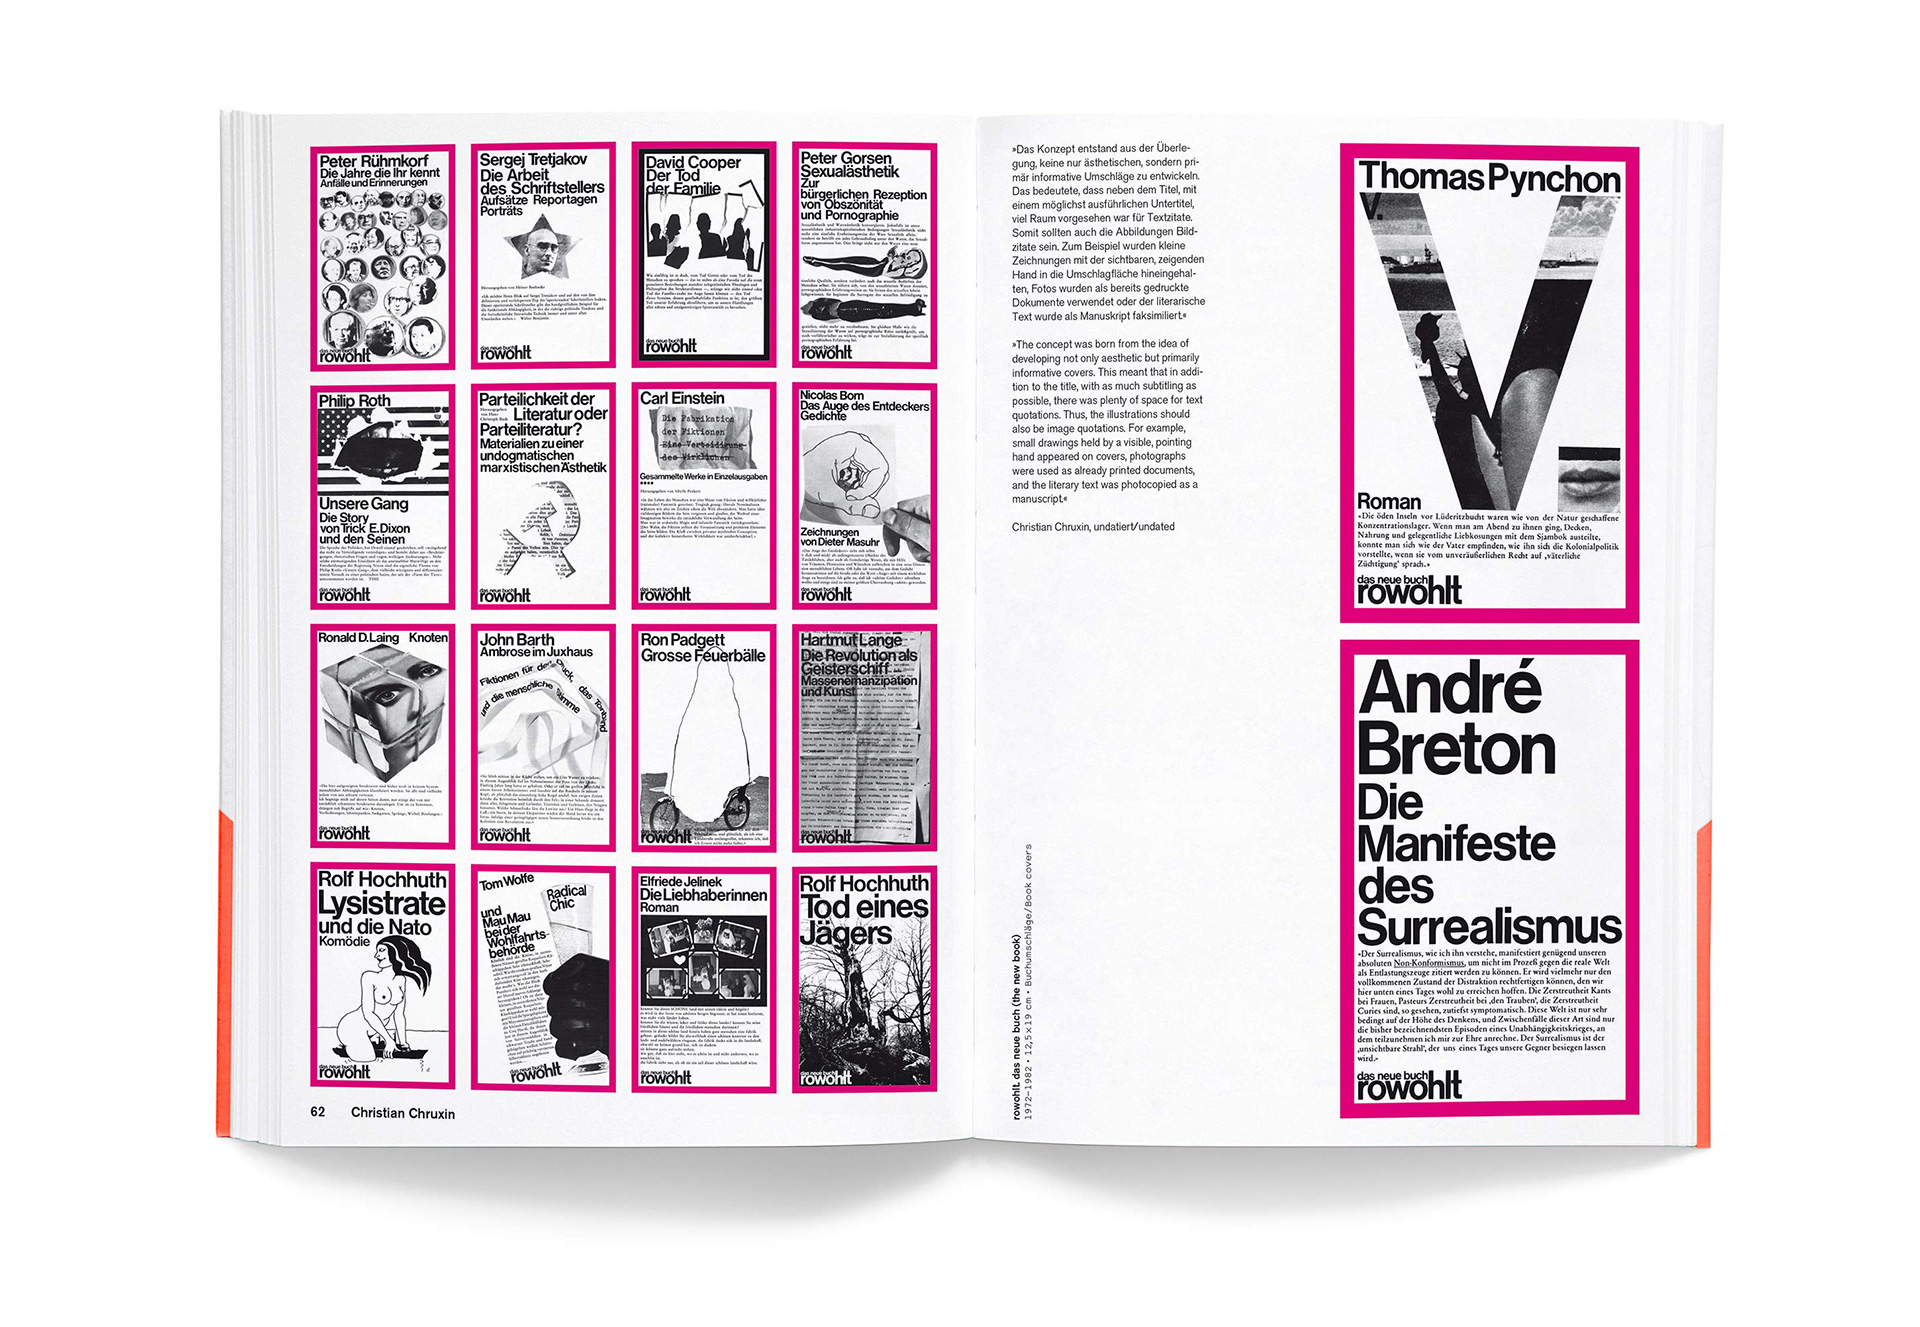 West-Berlin Grafik-Design – Graphic Design behind the Iron Curtain by Jens Müller| West-Berlin Grafik-Design – Graphic Design behind the Iron Curtain | Jens Müller| STIRworld